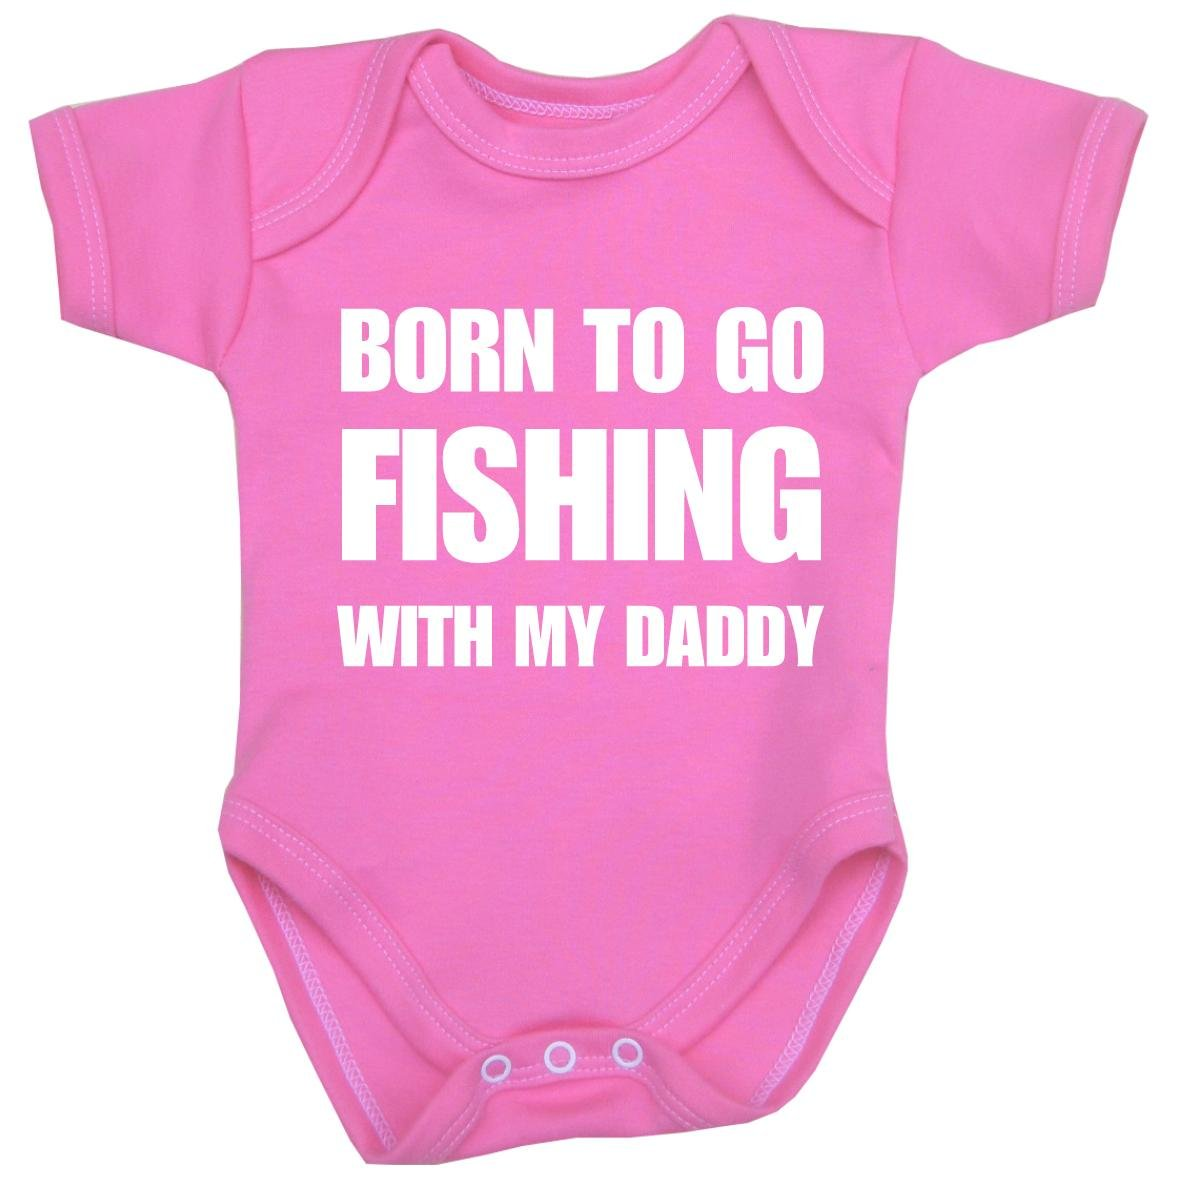 BabyPrem Baby Fishing with My Daddy Fun Clothes Bodysuit Vest One-Piece PINK 0-3